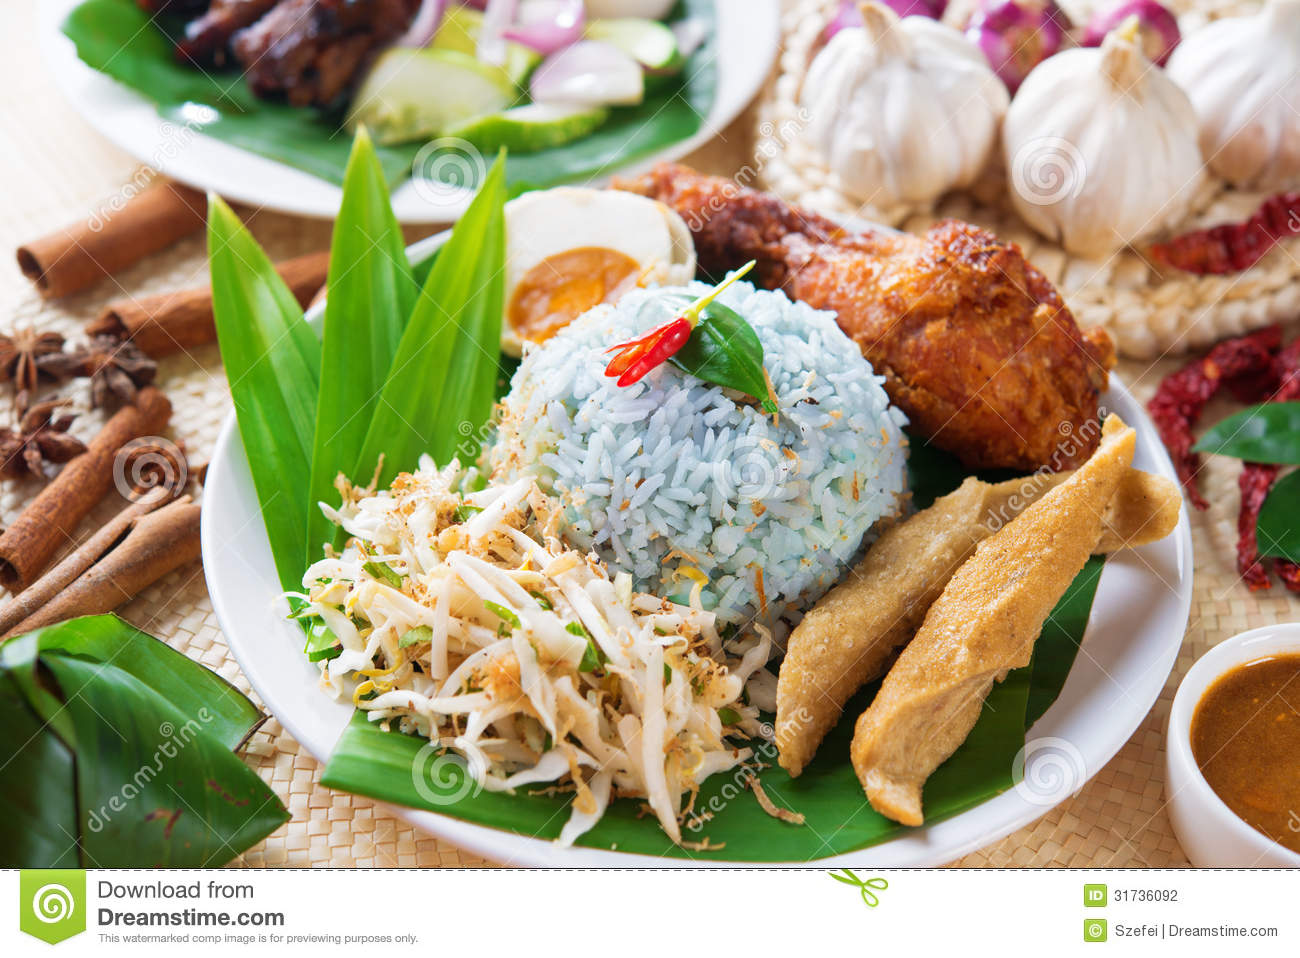 malaysia famous food nasi lemak essay Malaysia famous food nasi lemak good morning to lecturer and my dear classmate before i start my presentation, i would like to know something, do you all have your breakfast /lunch yet.